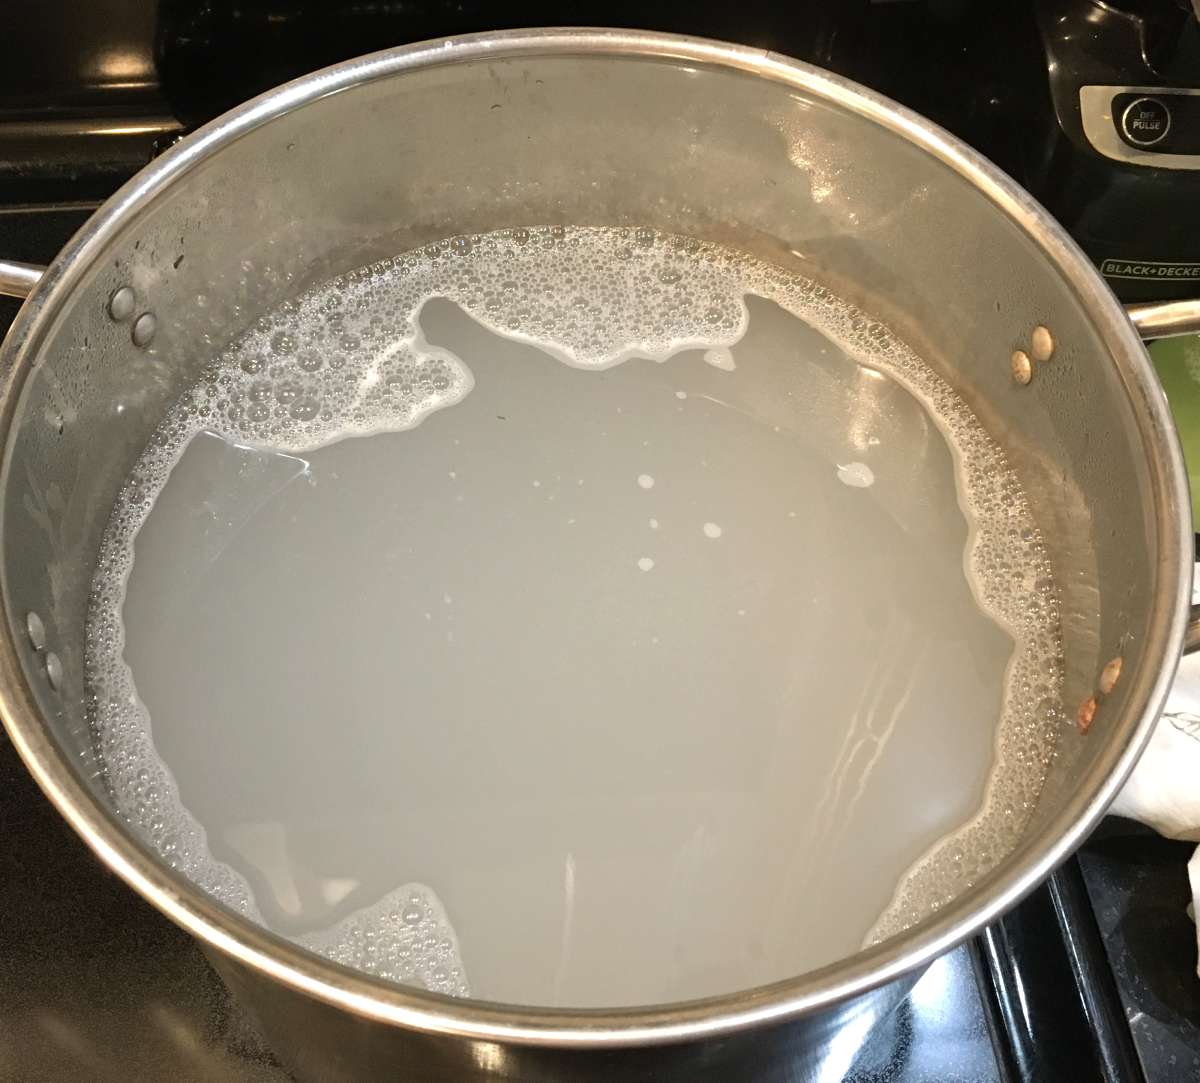 Mix water and washing soda to scour fabric